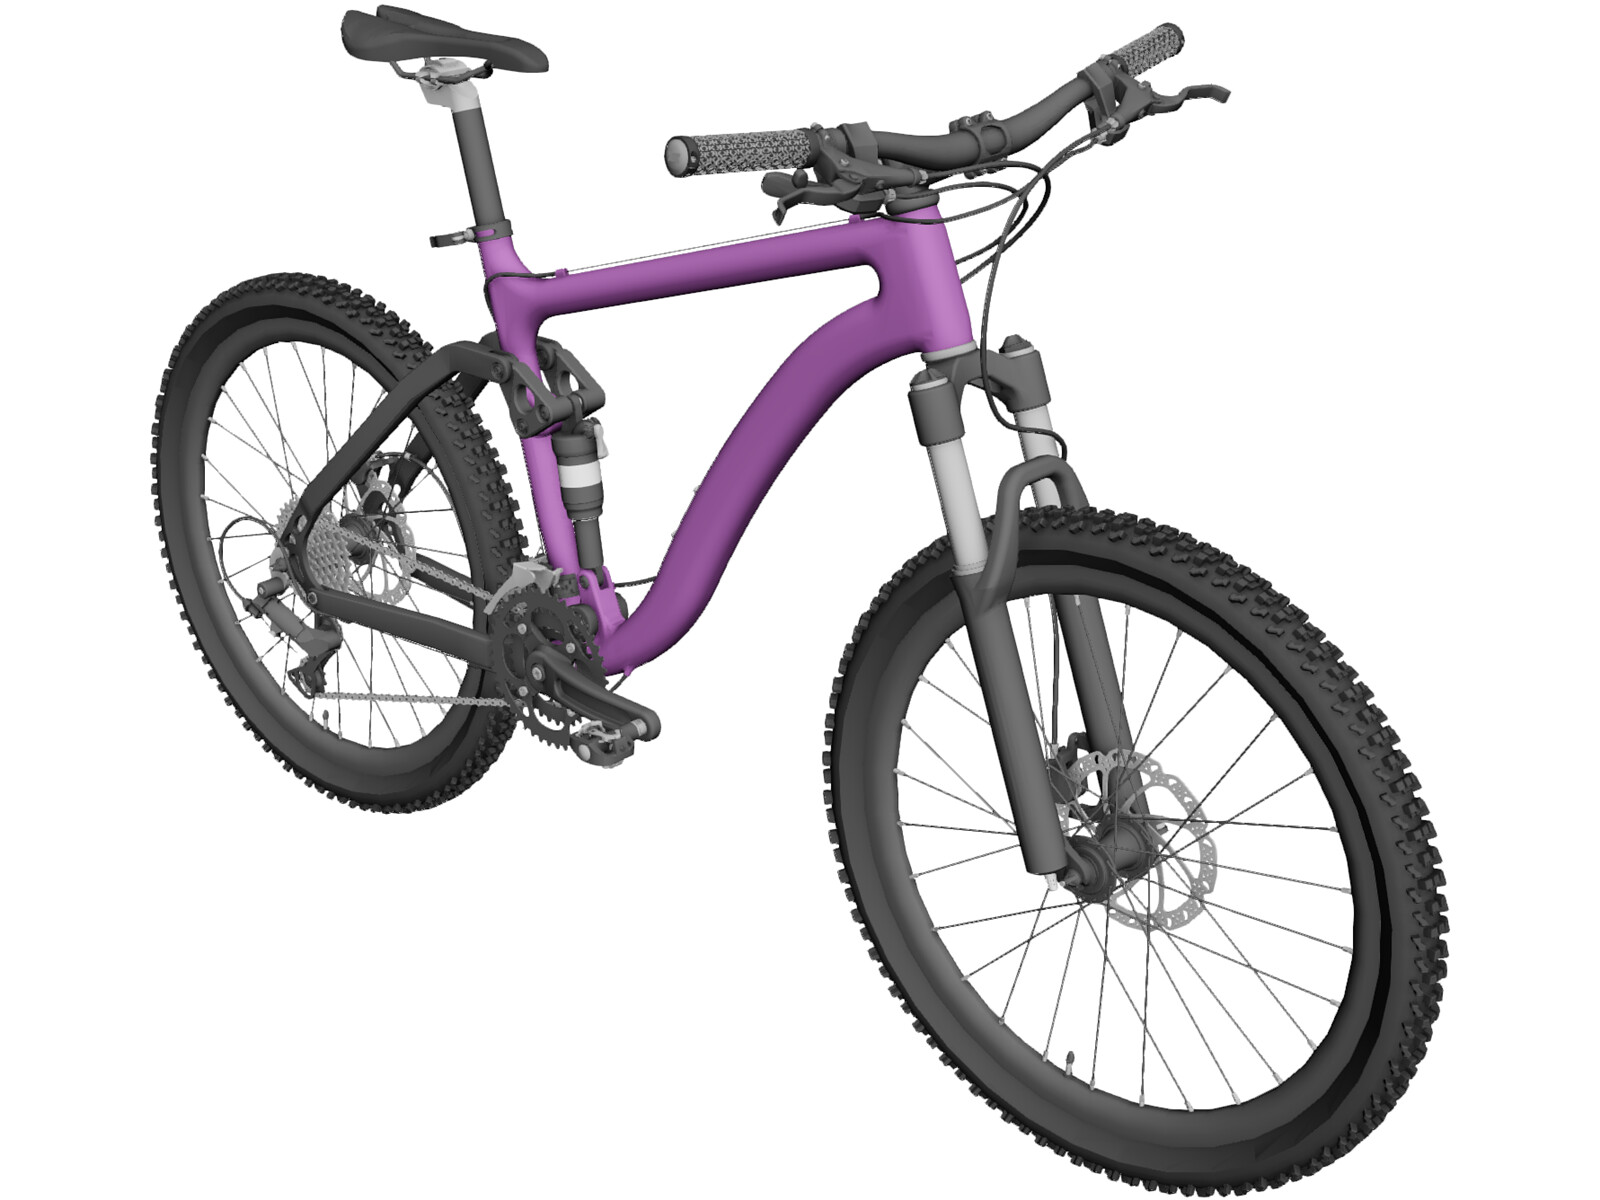 Bicycle Enduro 3D Model